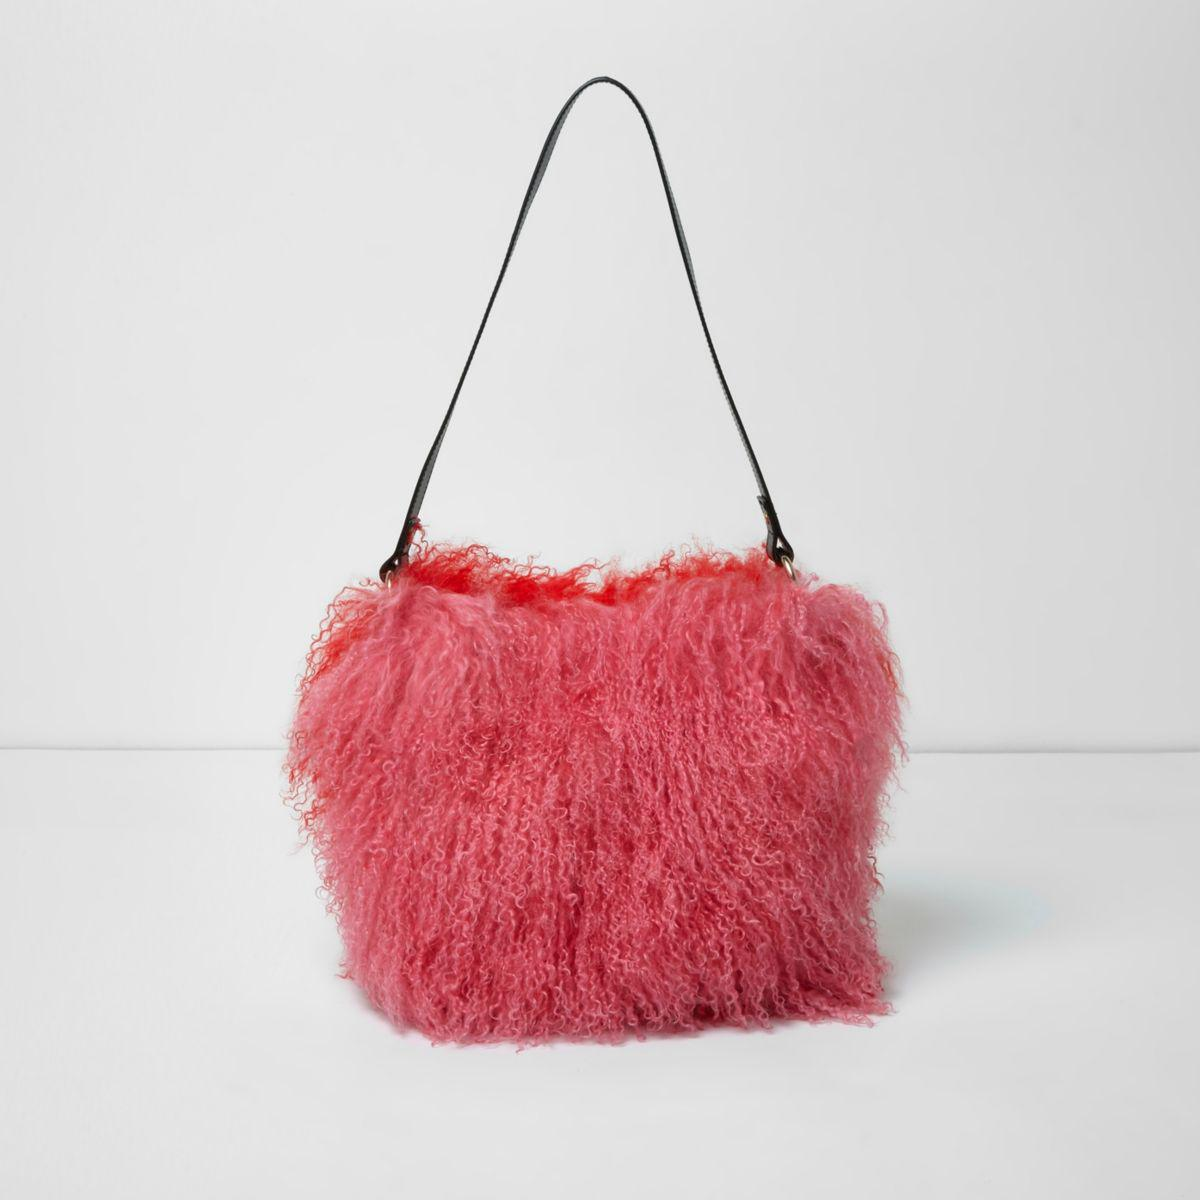 dd522ba2b91d Lyst - River Island Pink And Red Mongolian Fur Leather Bucket Bag in ...